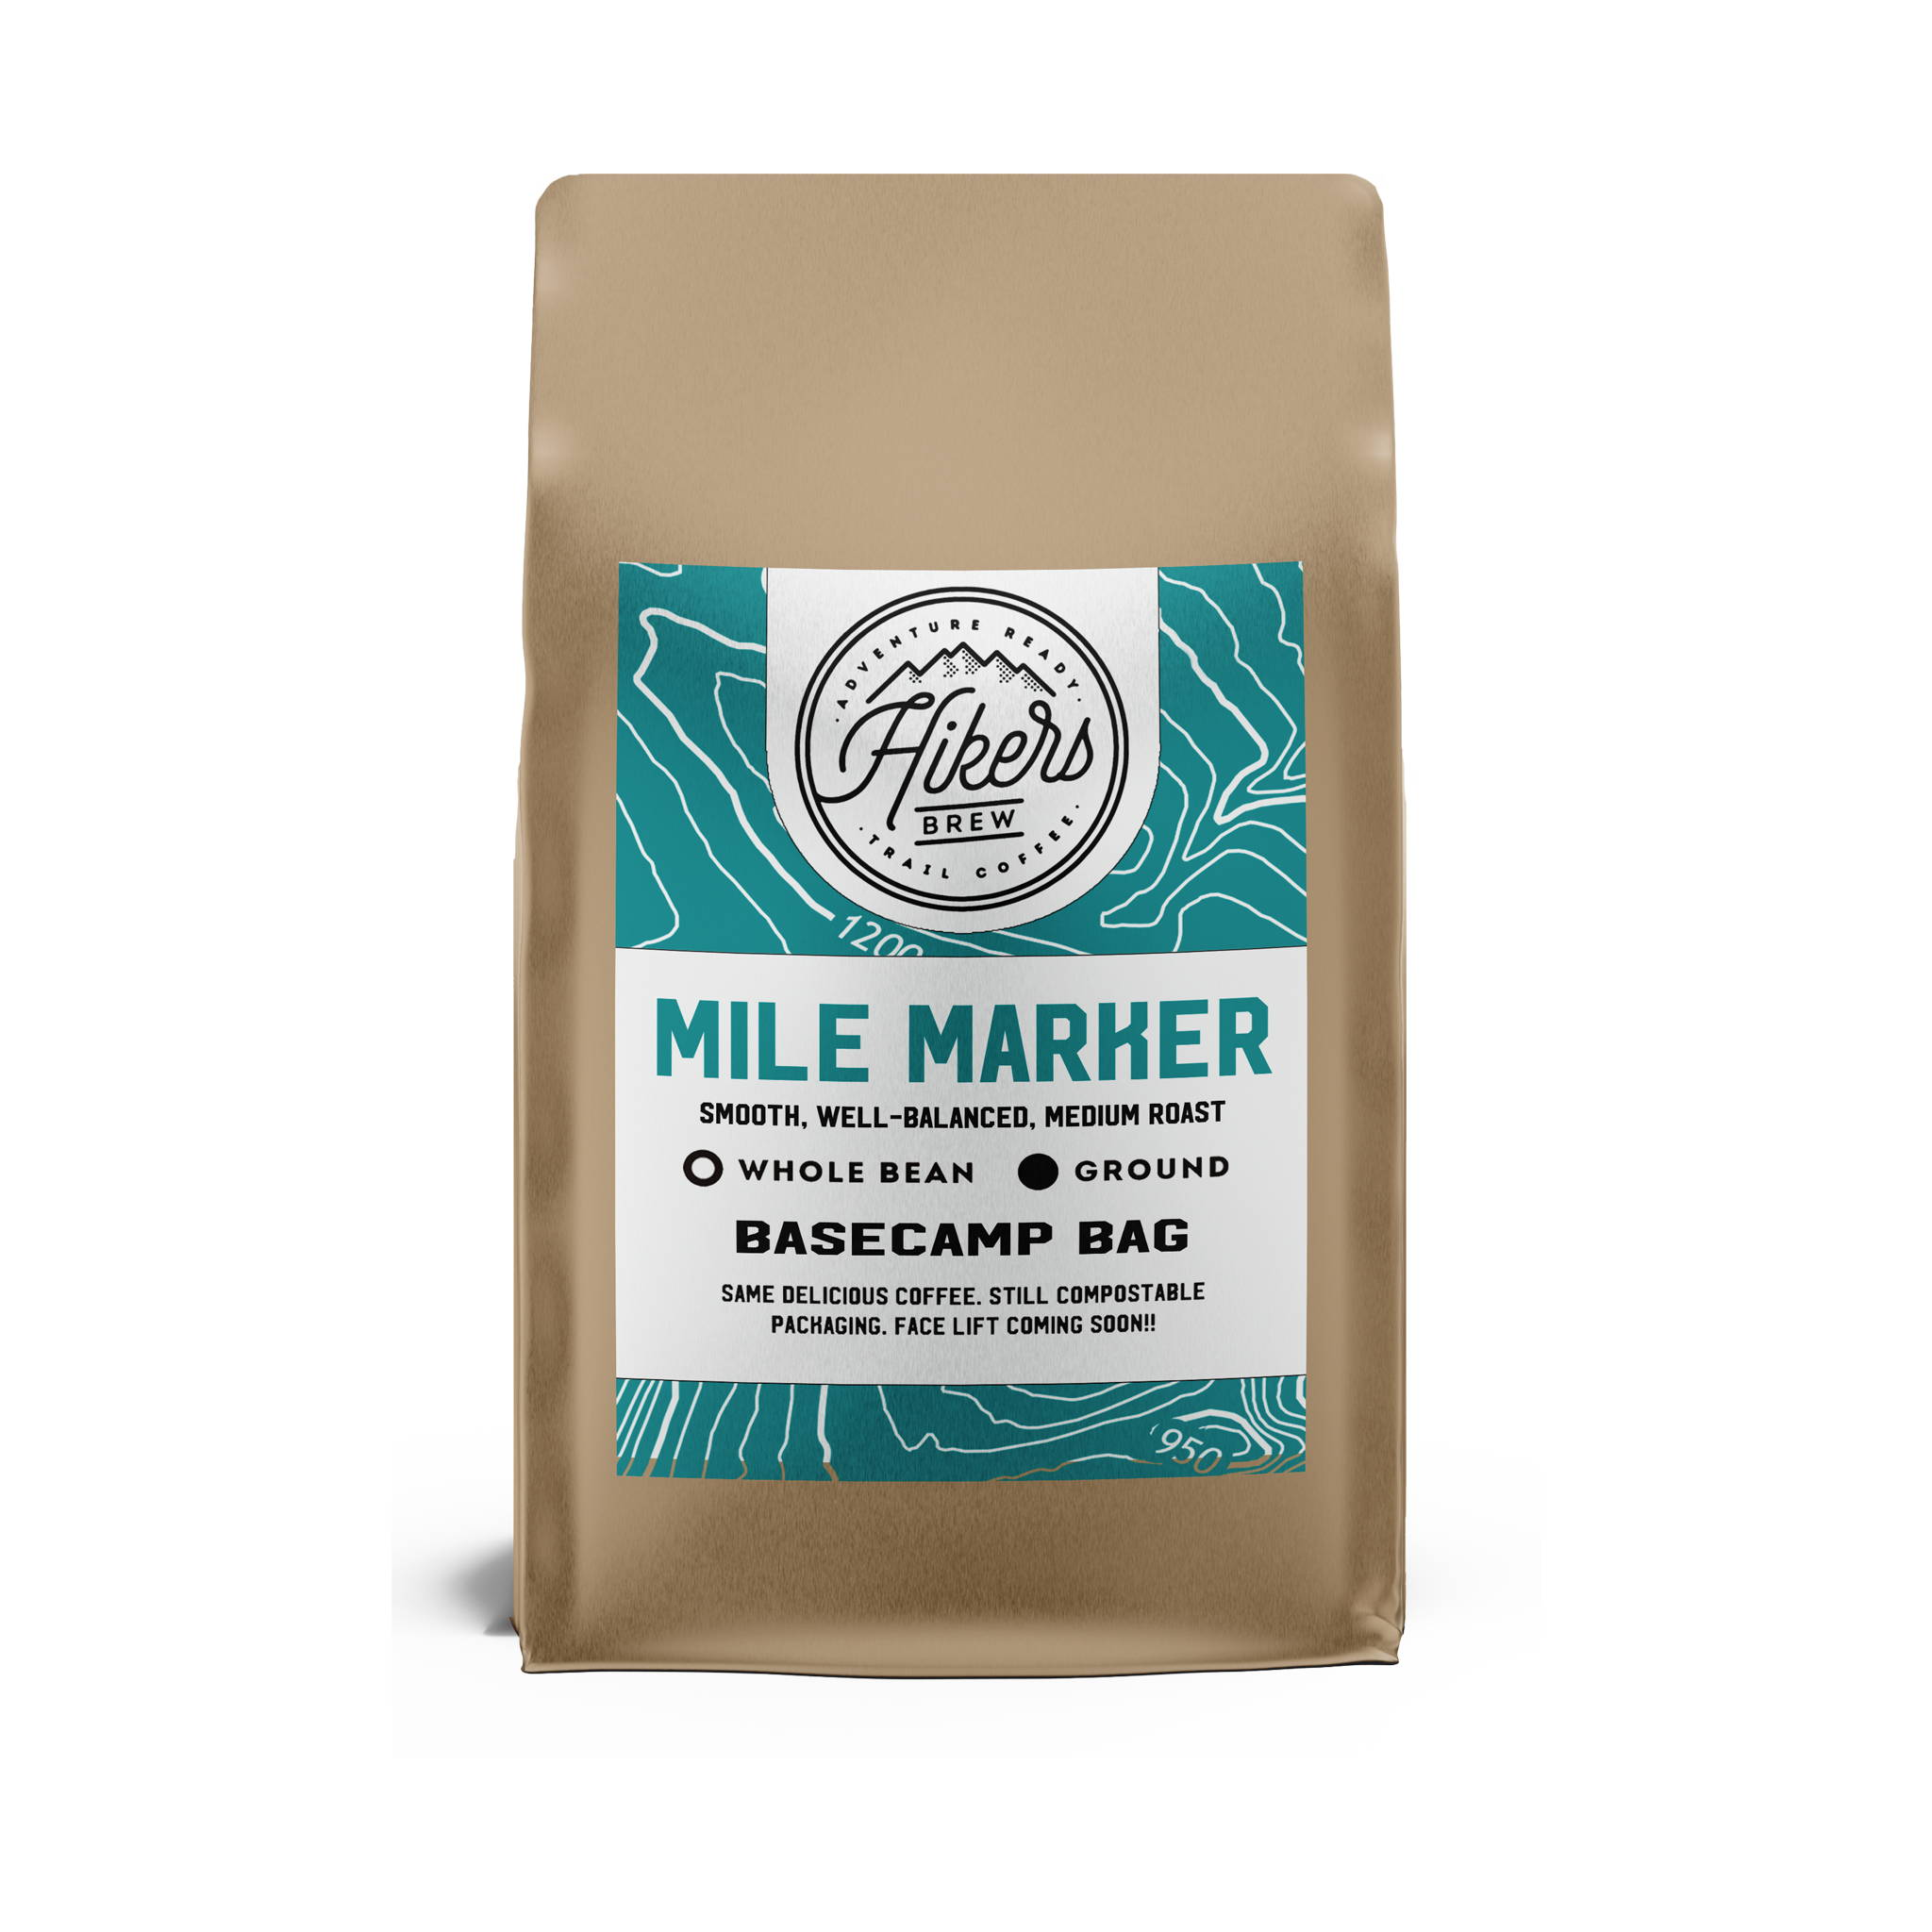 Mile Marker - Regular Medium Roast Coffee - 12 oz.